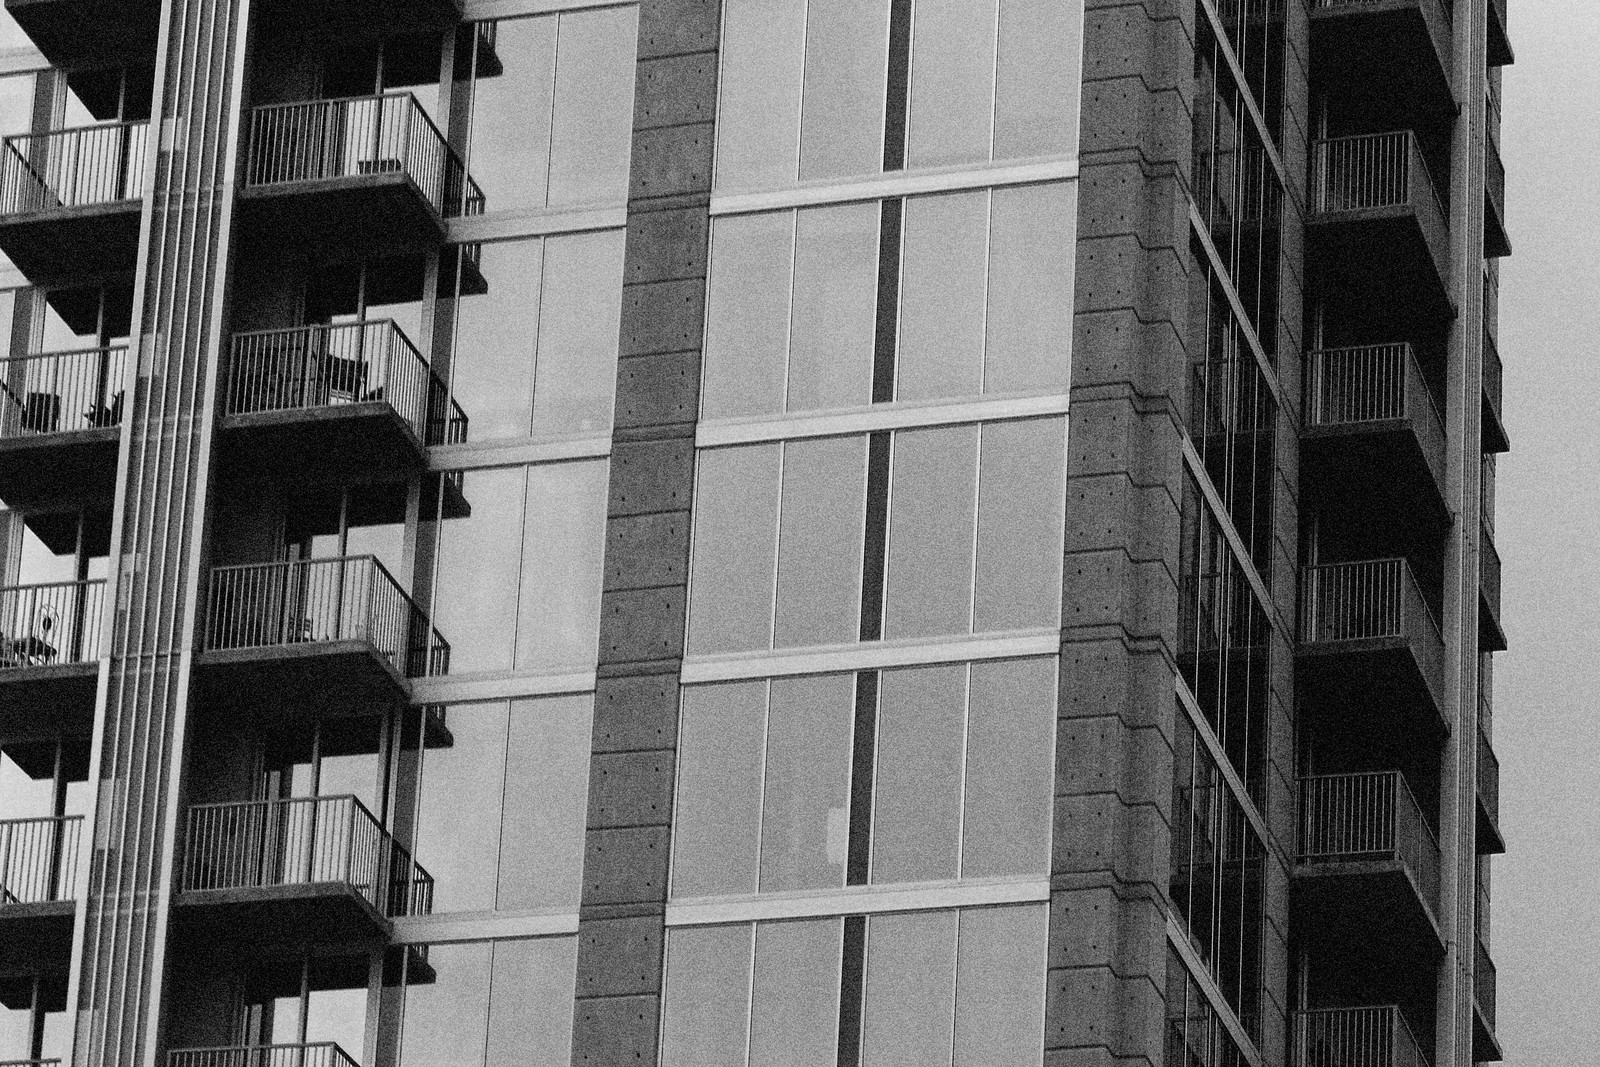 Balconies, Midtown Atlanta, 2015